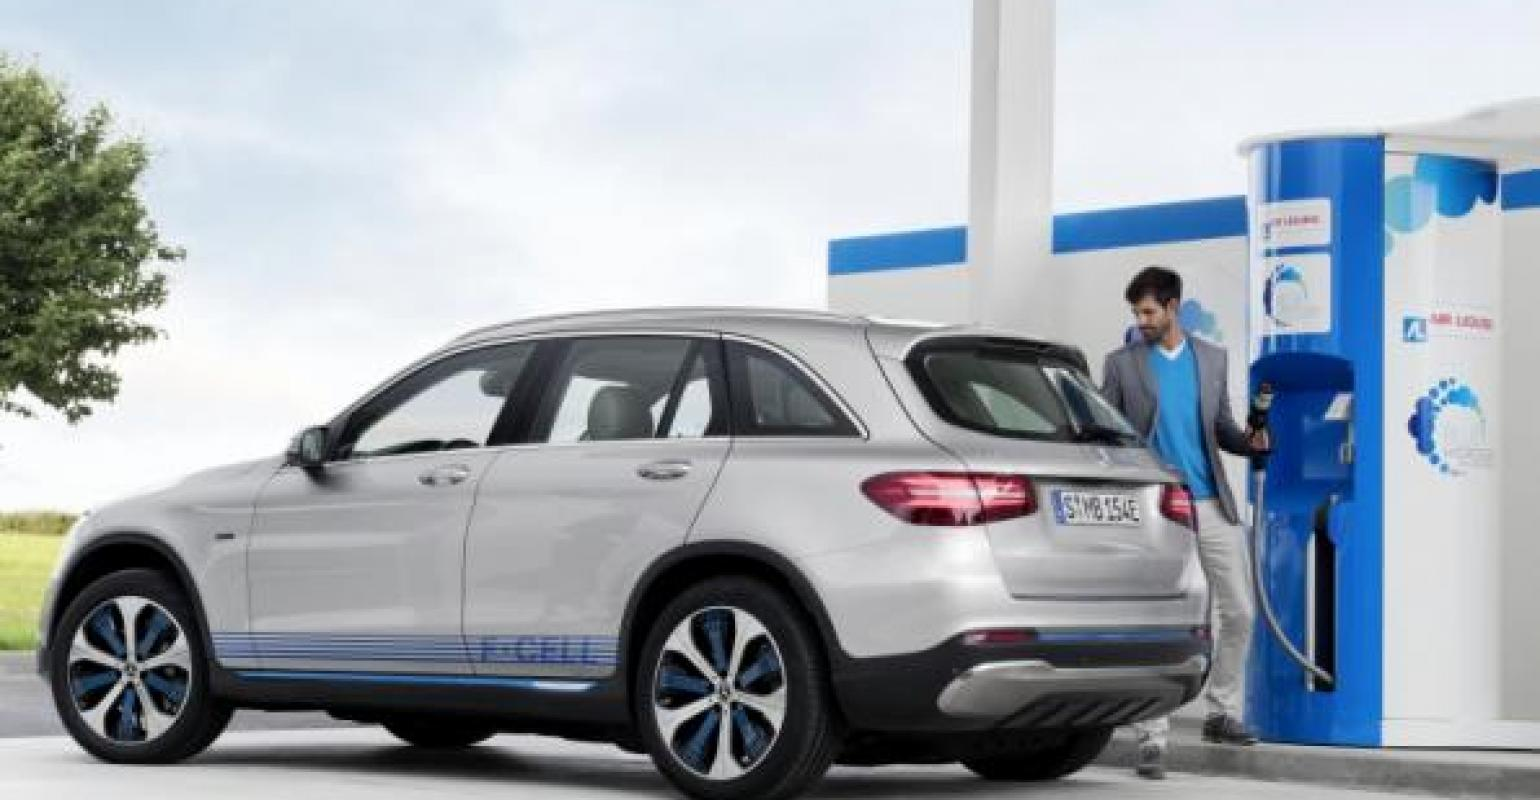 Mercedes-Benz: Is Fuel-Cell SUV Headed to Technological Dead